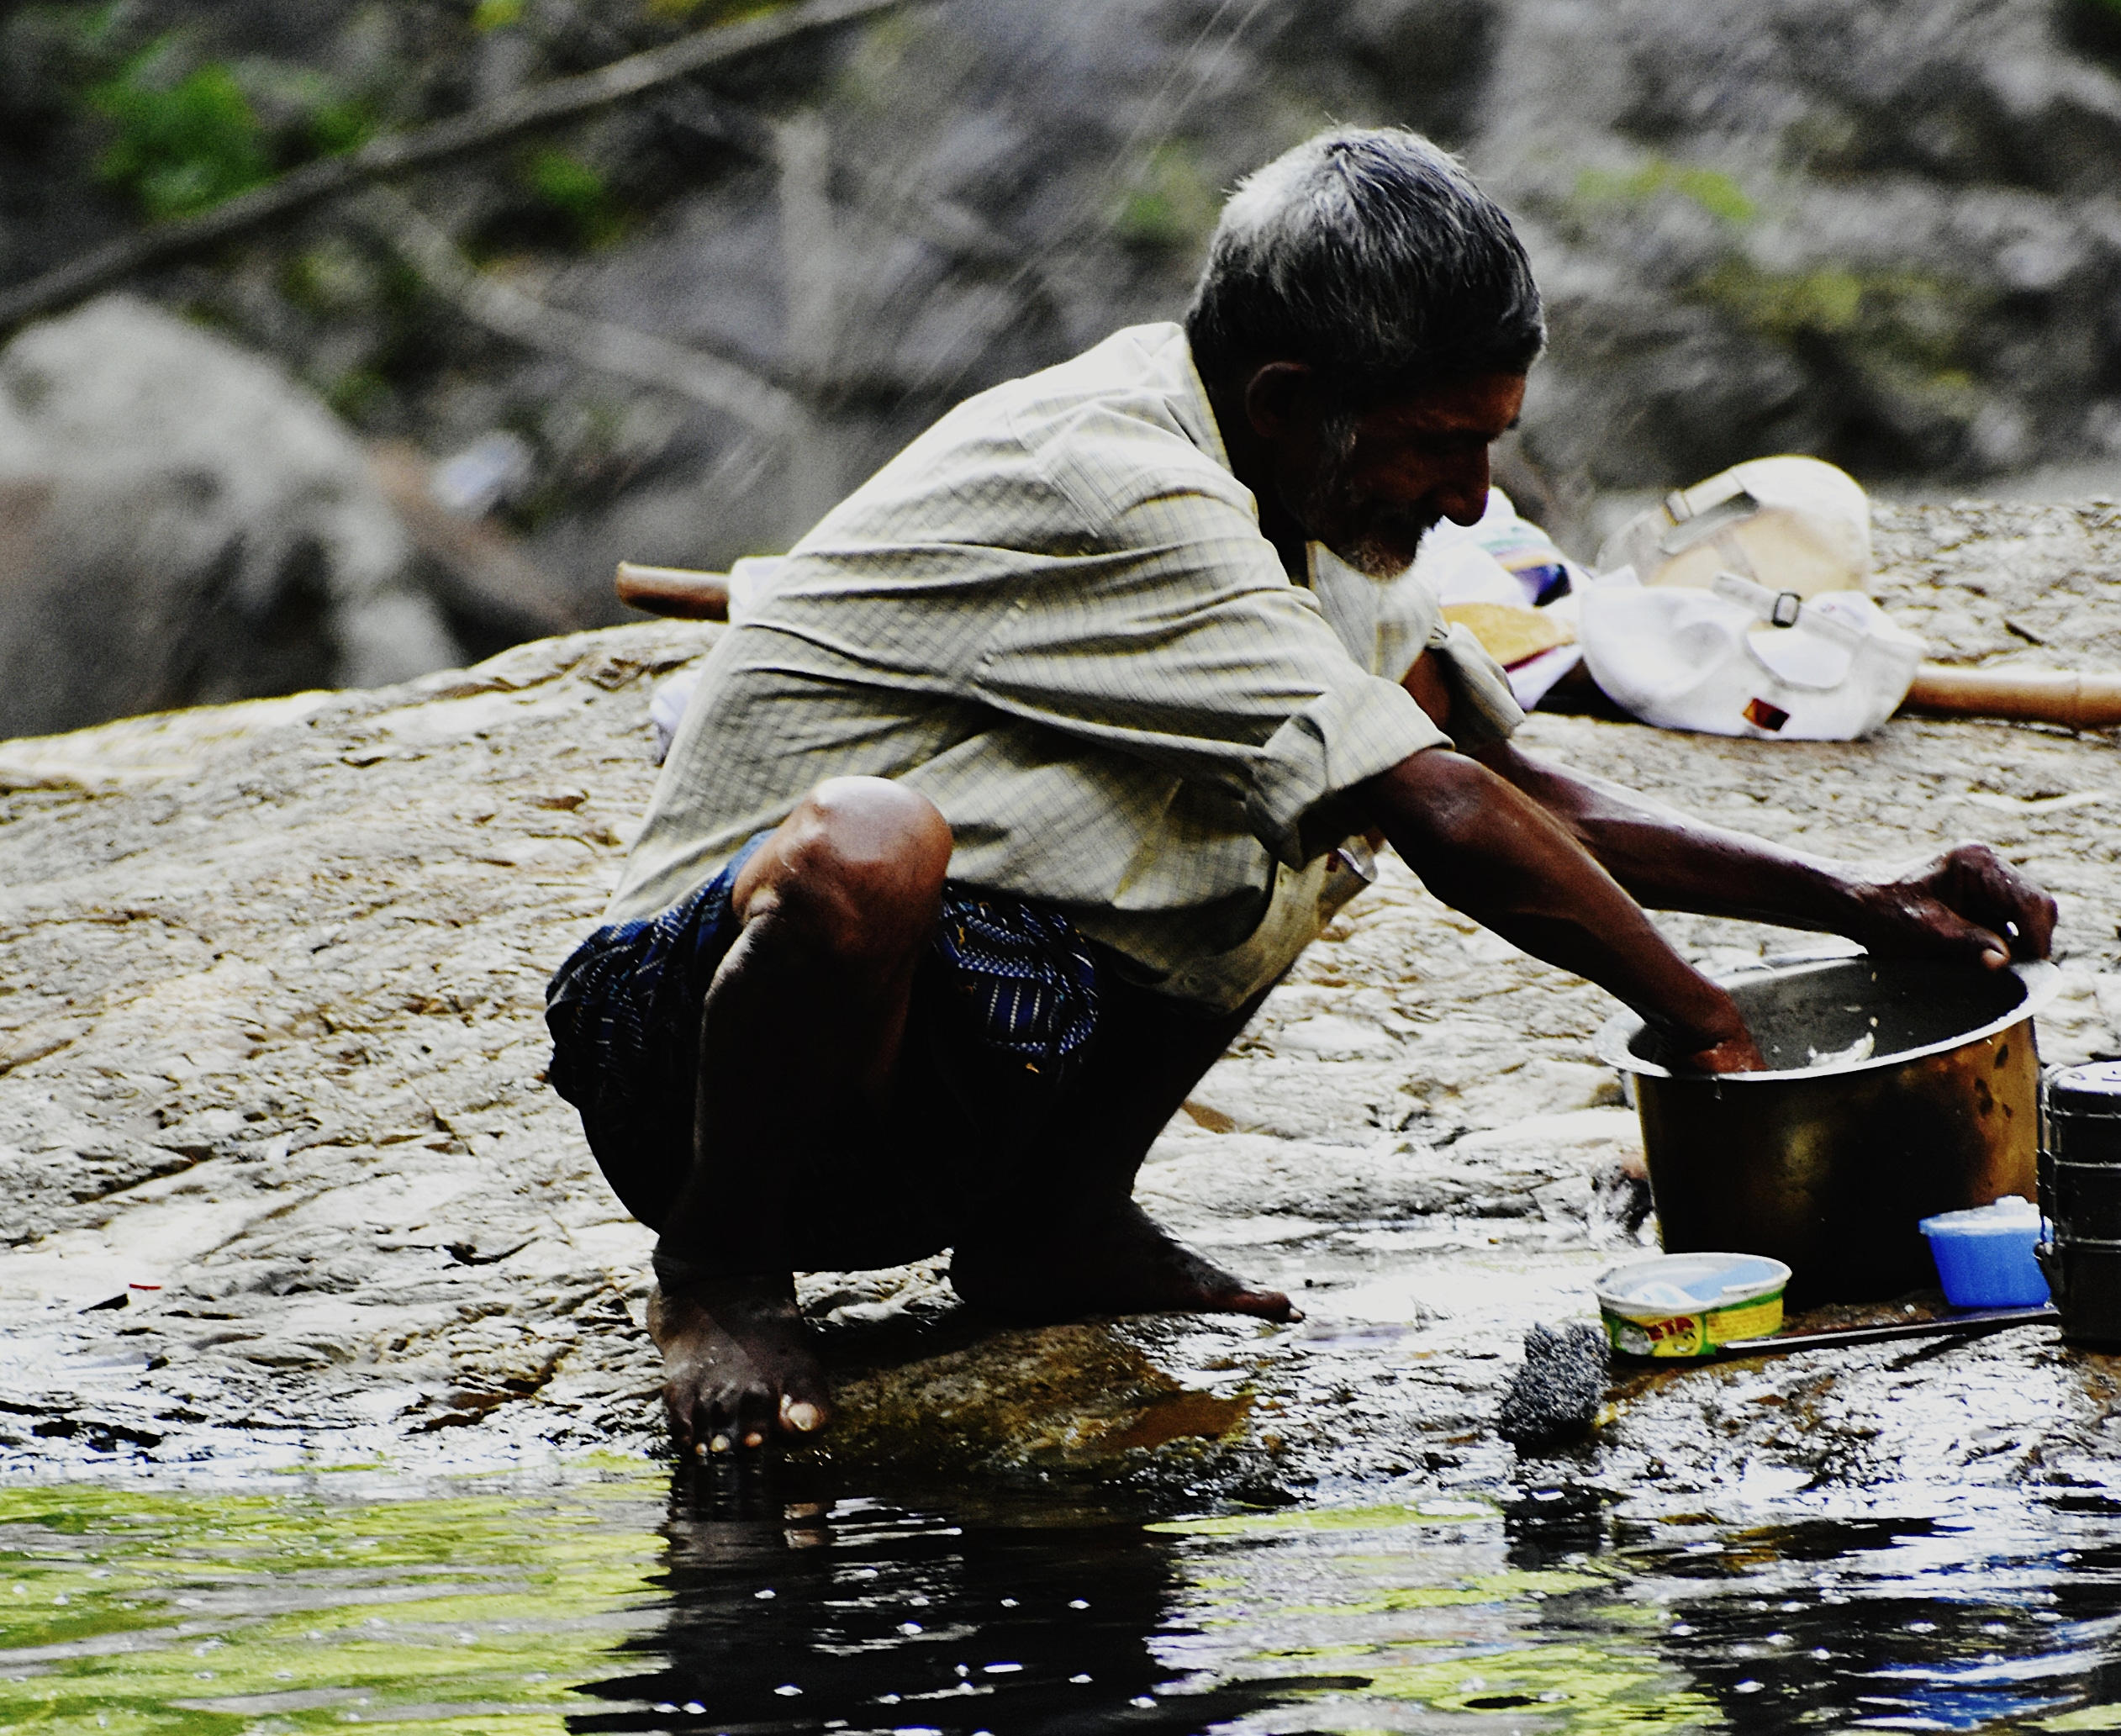 A man cleaning pots with river water